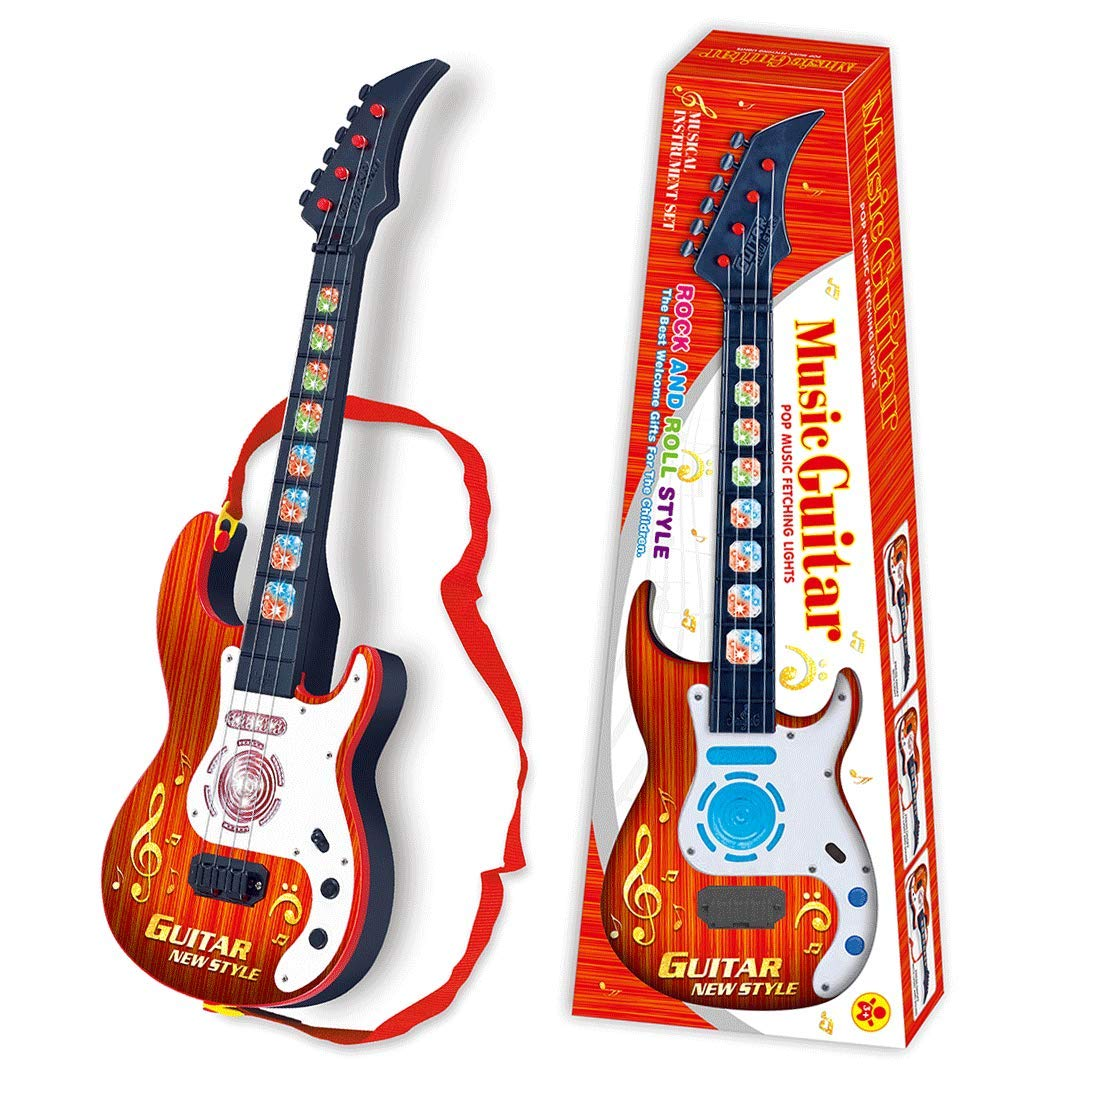 PeleusTech® 21inch 4 Strings Electric Guitar Rock Star Musical Instruments Educational Toy for Kids, Children, Boys and Girls - (Type A)